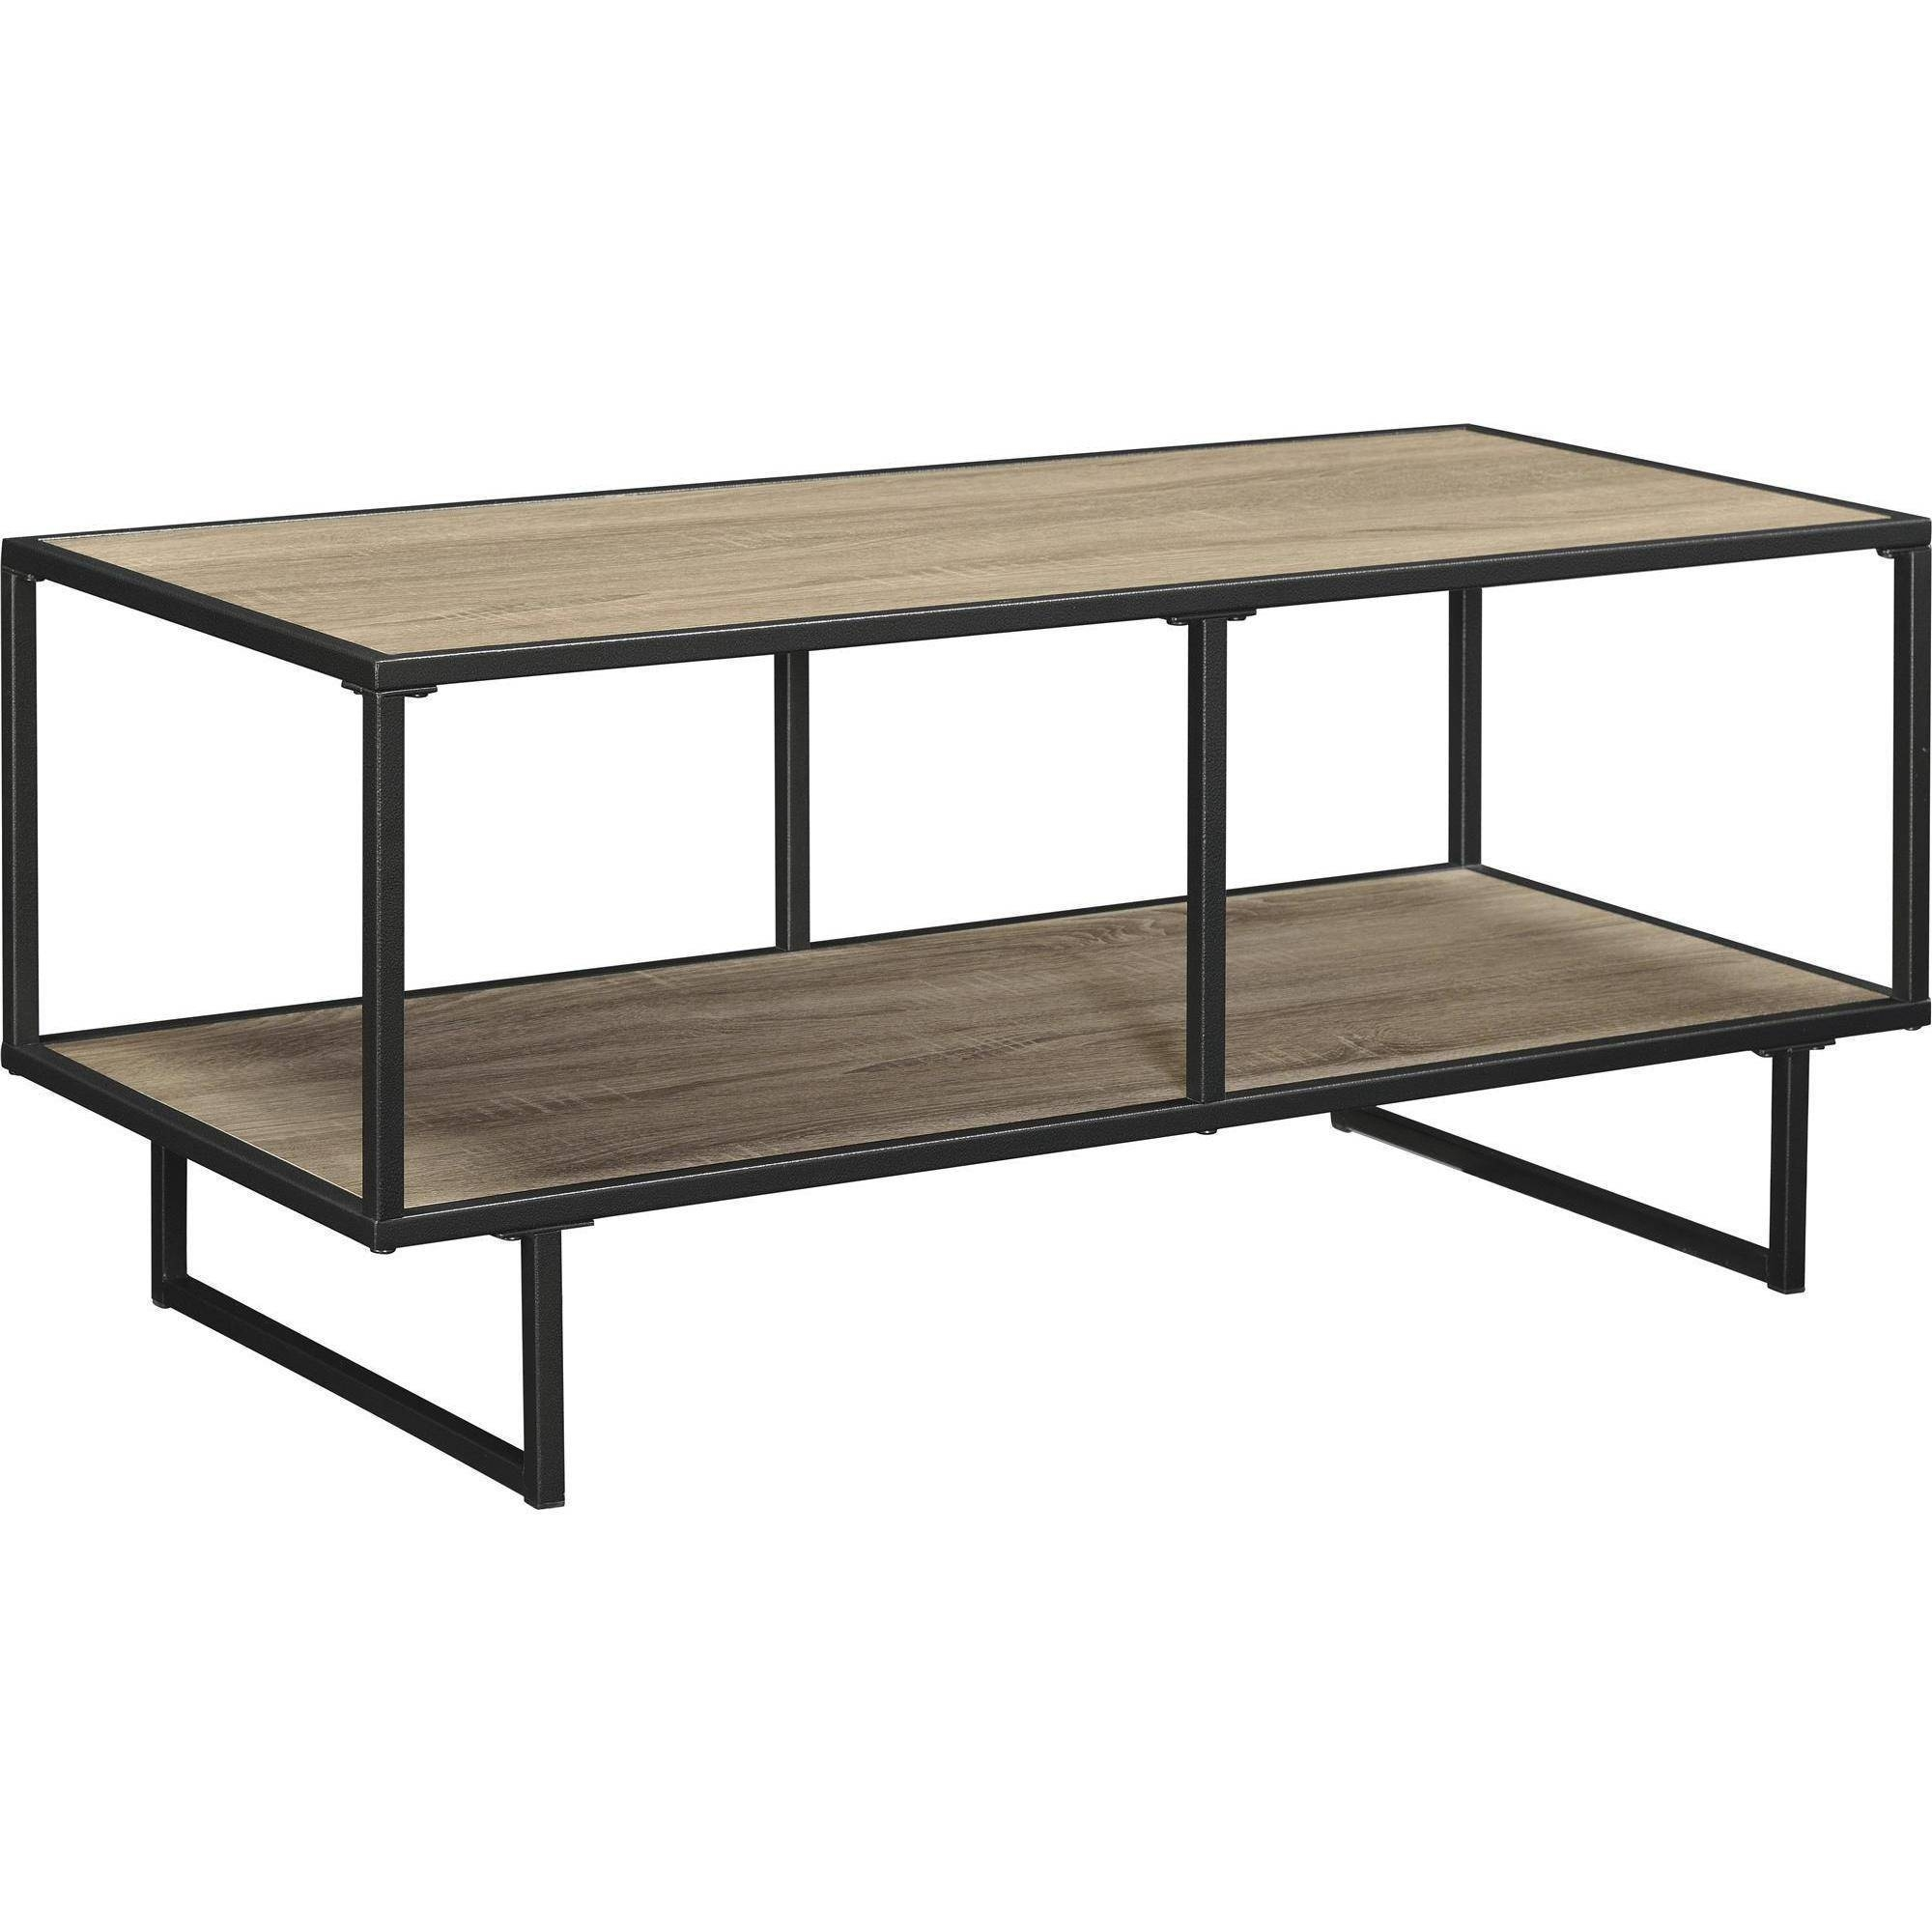 "Ameriwood Home Emmett Tv Stand/coffee Table For Tvs Up To 42"" Wide intended for Tv Unit and Coffee Table Sets (Image 2 of 30)"